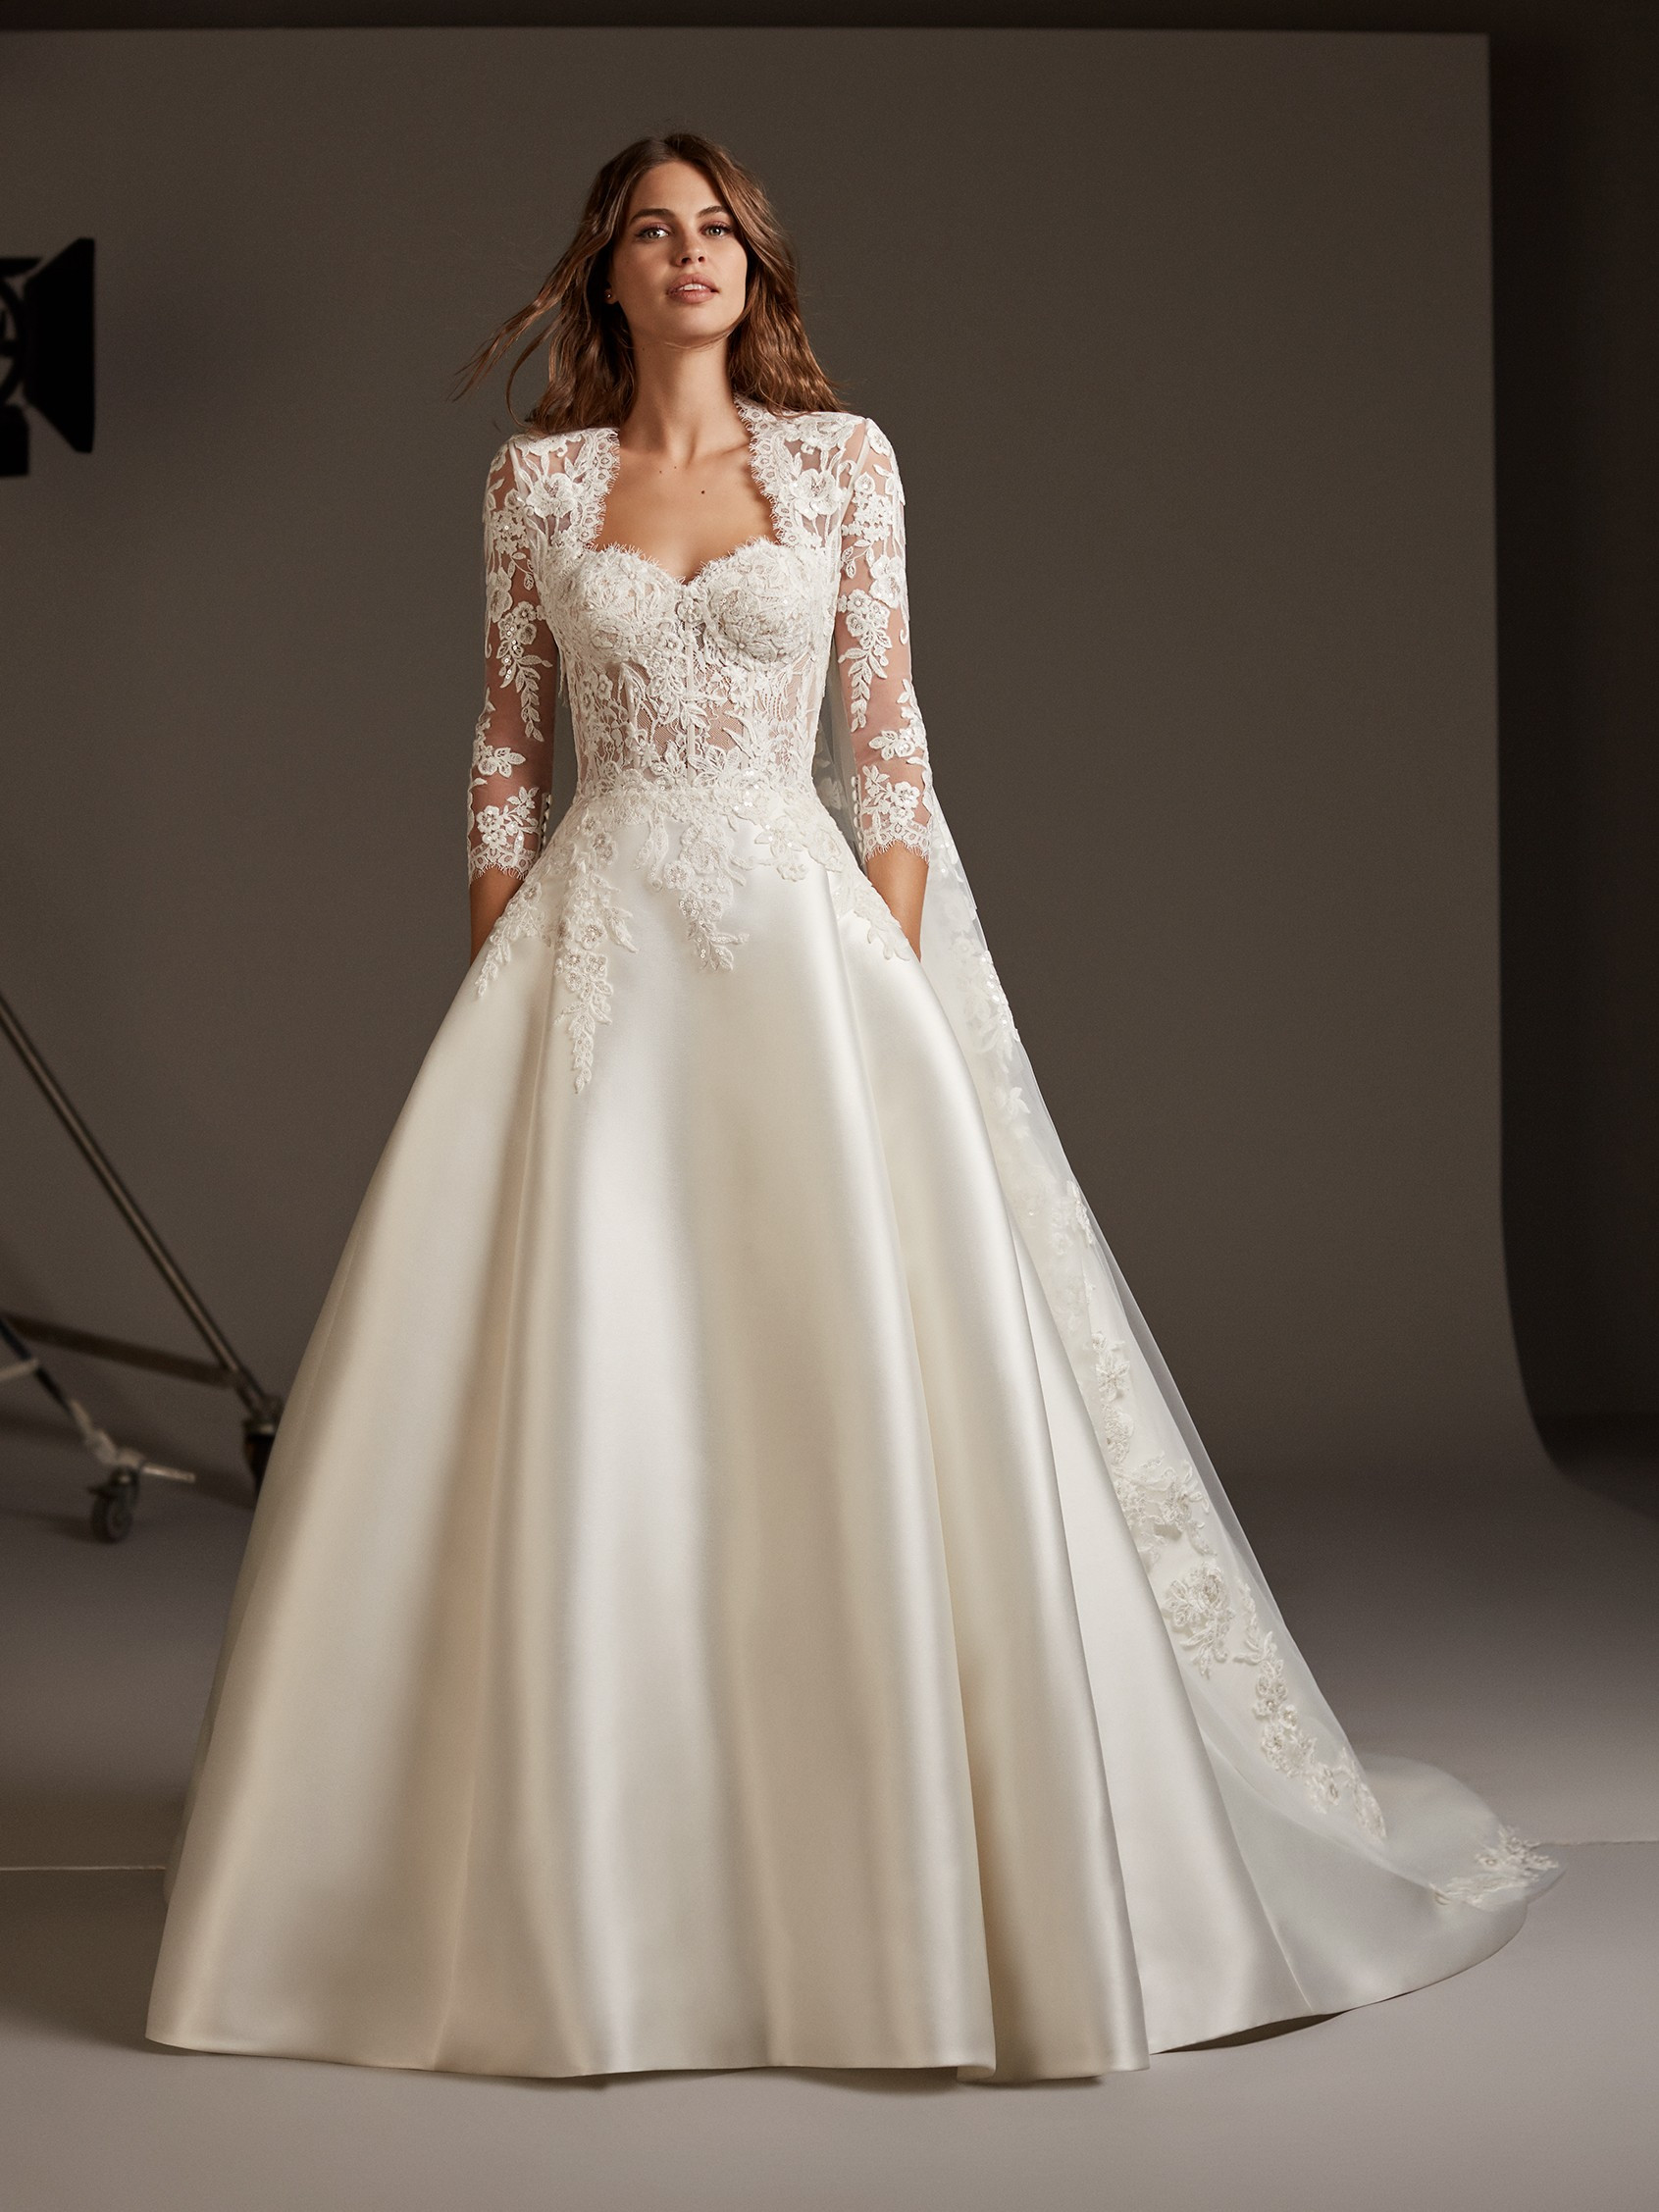 See Through Wedding Dresses.Silk Ball Gown With See Through Lace Corset Bodice